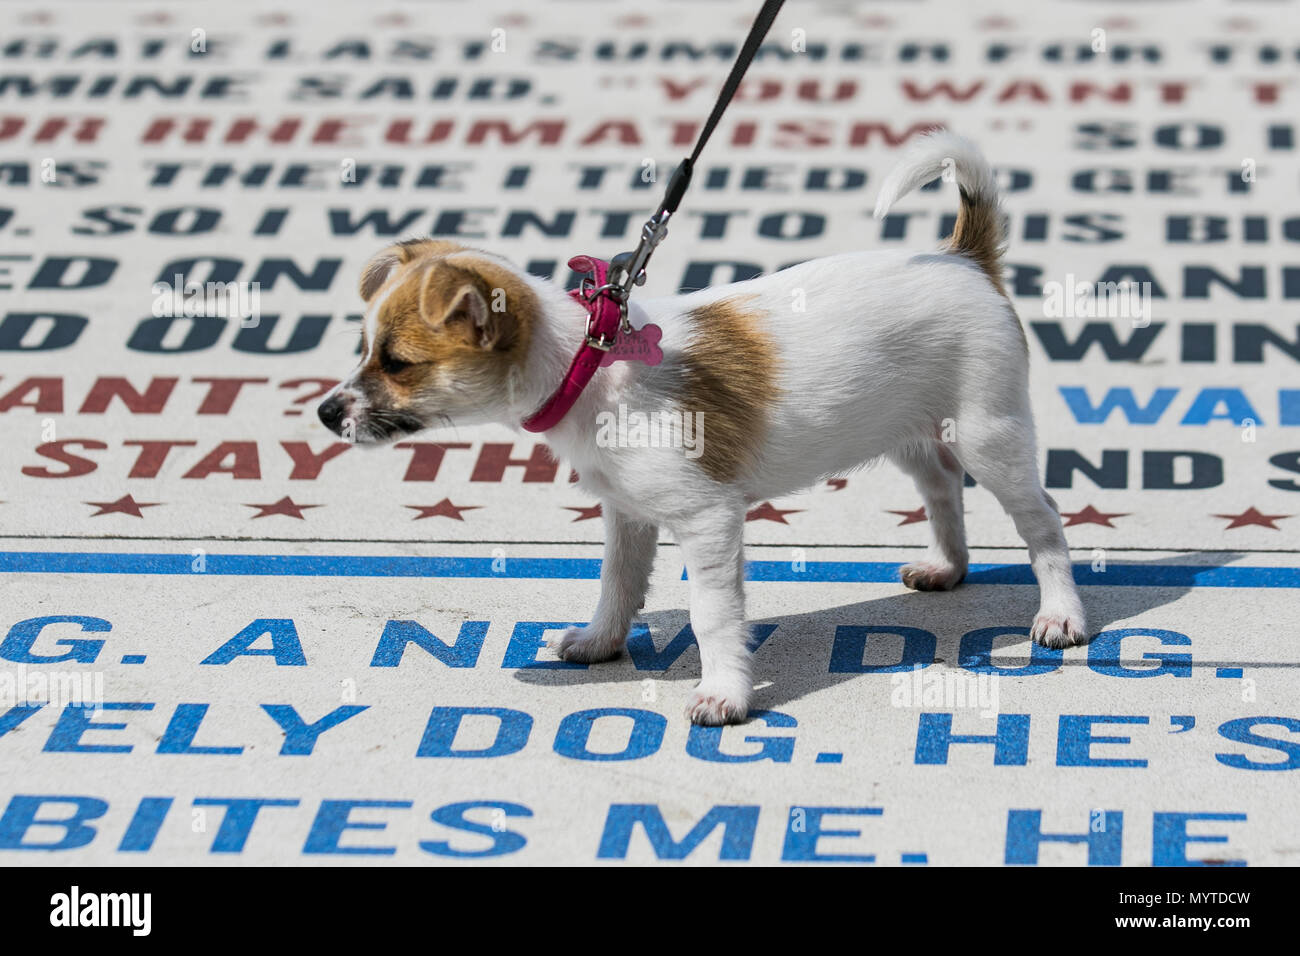 Blackpool, Lancashire. UKWeather.  08/06/2018.  Bright sunny day out for new Jackuahua dog Chico chihuahua cross at 14 weeks old, as he explores the coastal promenade. Residents, holidaymakers, day trippers and tourists take a stroll on the seafront attraction, a comedy pavement or comedy carpet on the promenade tower headland. The Jack Chi is a cross between a purebred Chihuahua and Jack Russell Terrier. Credit: MediaWorldImagesAlamyLiveNews. - Stock Image